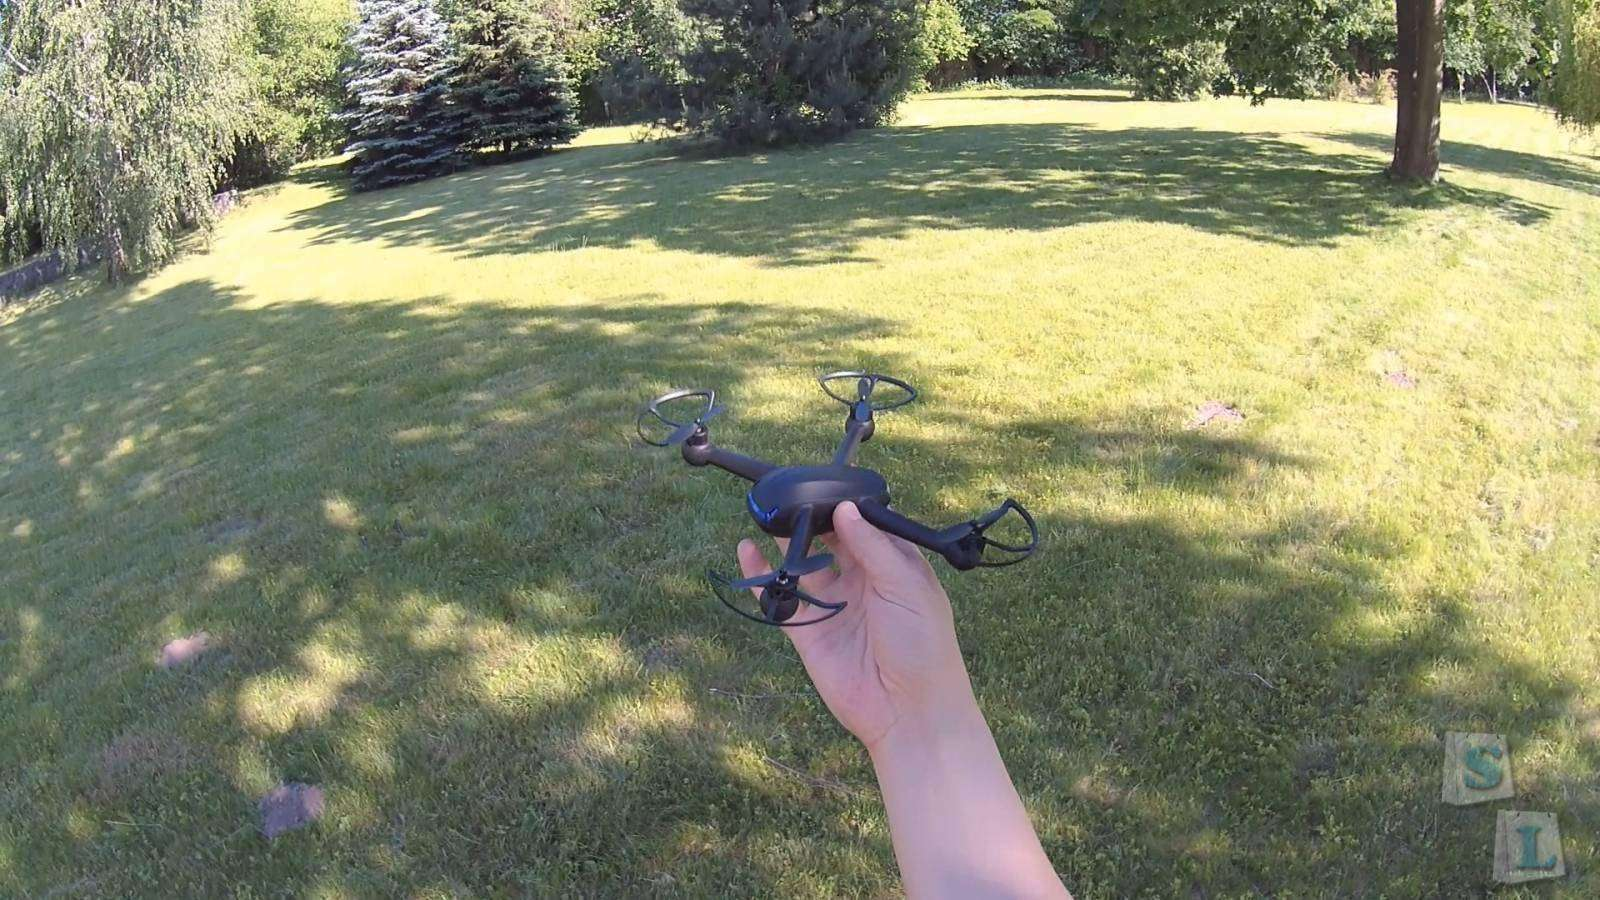 Banggood: DM007 2.4GHz, 4Ch, 6 Axis Gyro, RC Quadcopter with Headless Mode and 2MP Camera (RTF)